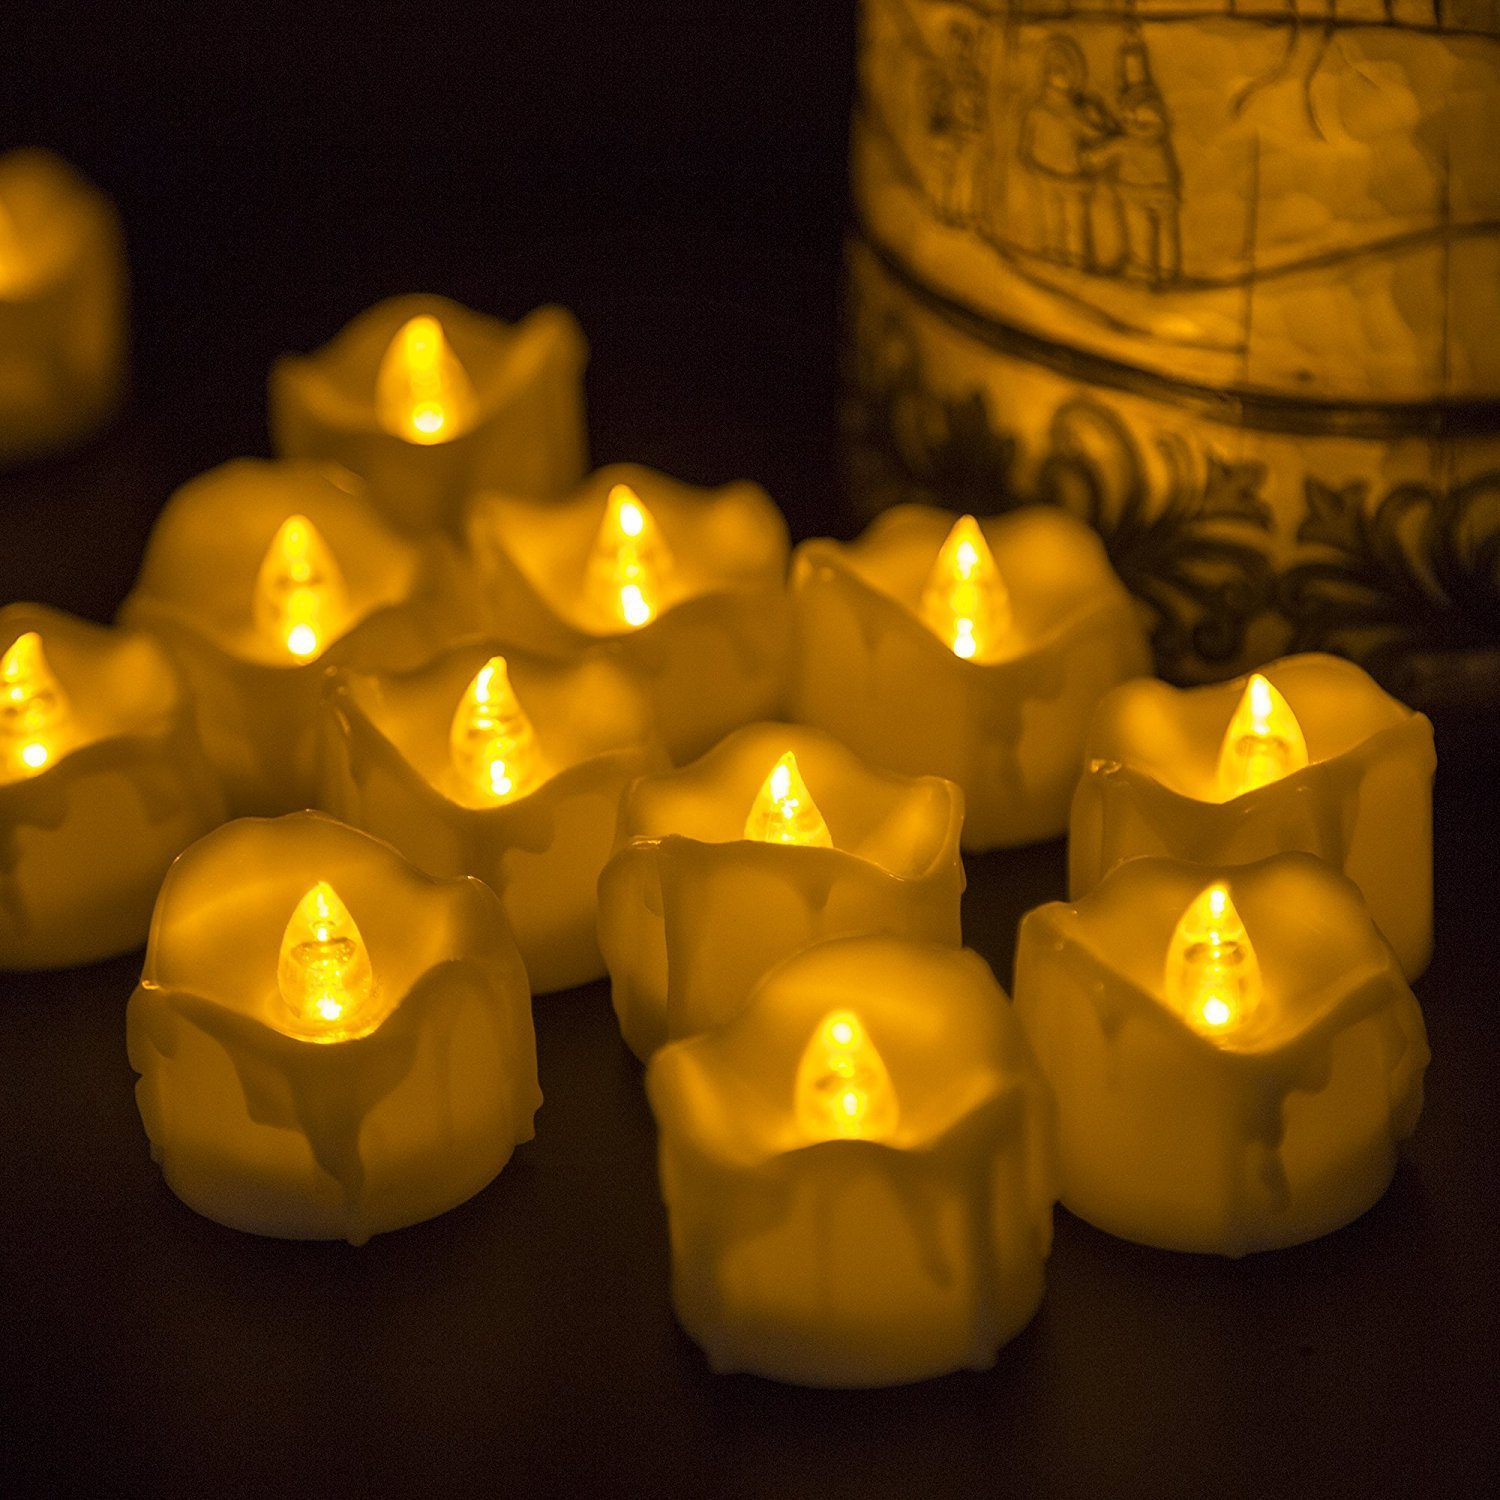 cheap led halloween candles, find led halloween candles deals on